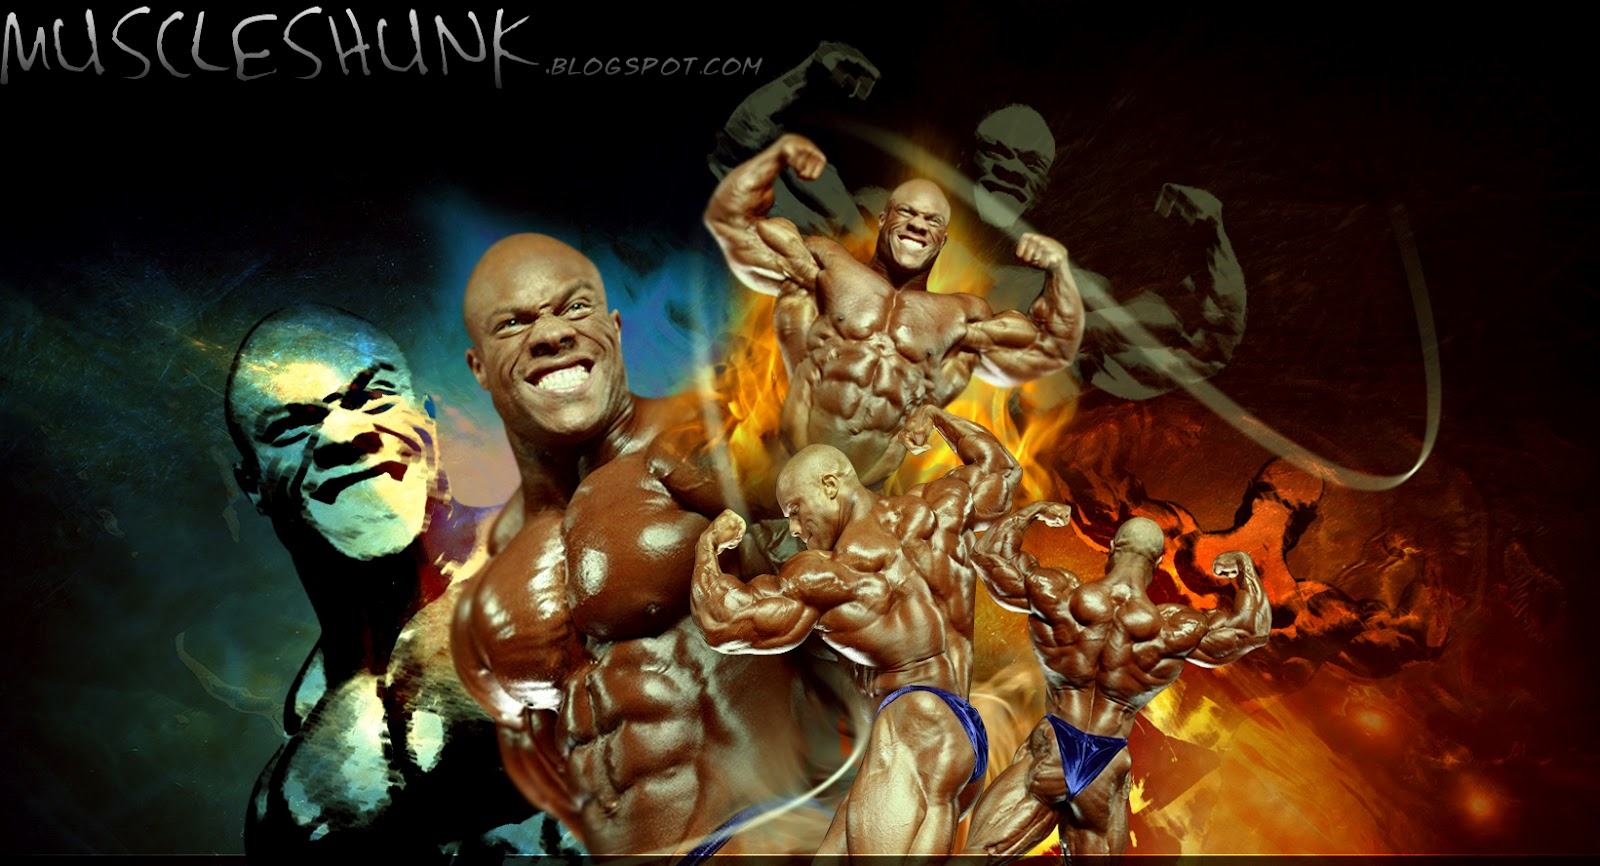 Wallpaper Mr Olympia Cool Desktops Wallpapers 1600x866